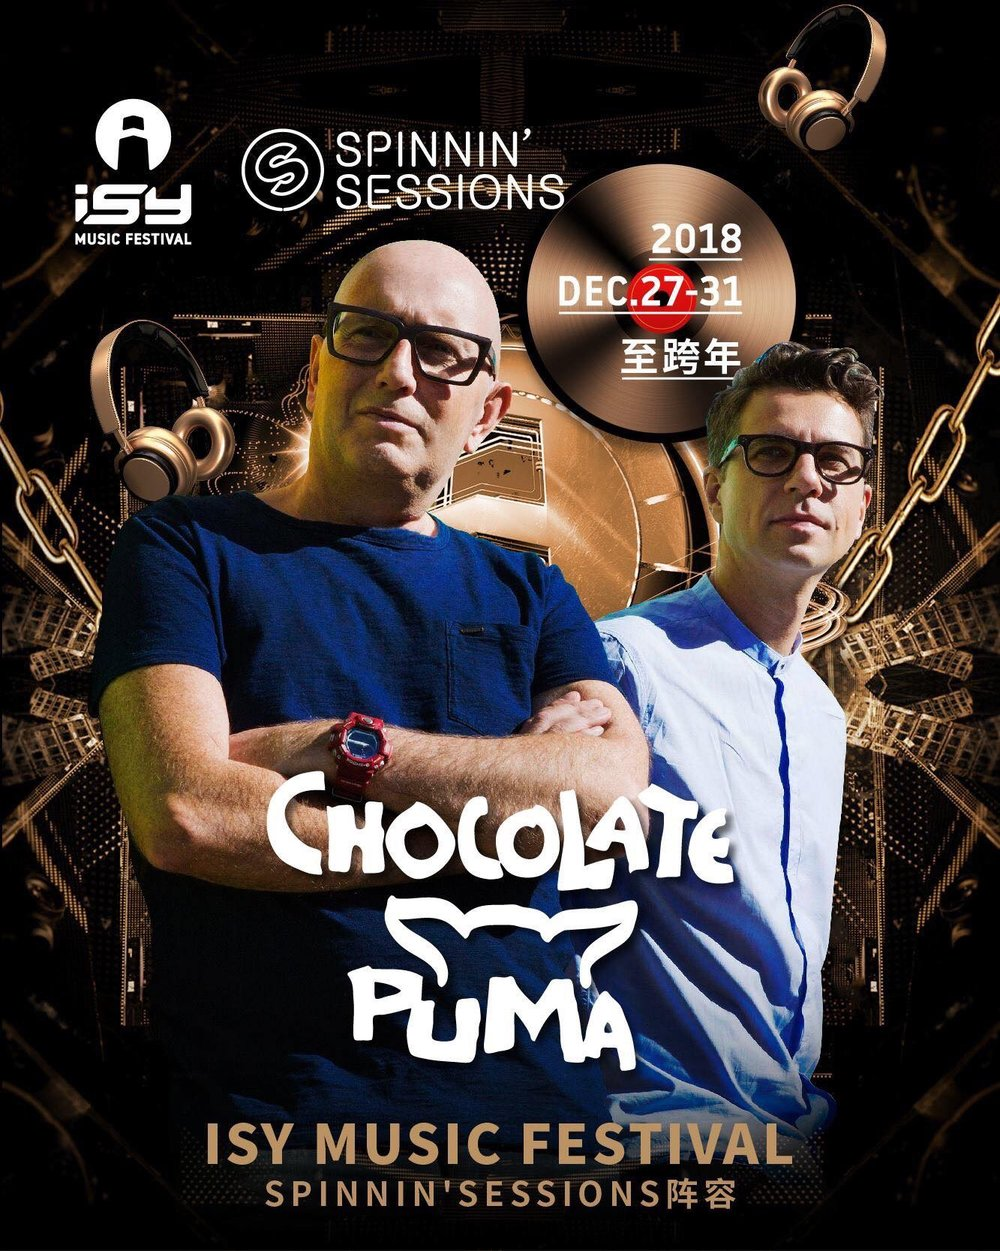 Chocolate Puma - Zki & Dobre are a DJ and music production duo from Haarlem, Netherlands.Their stage names include